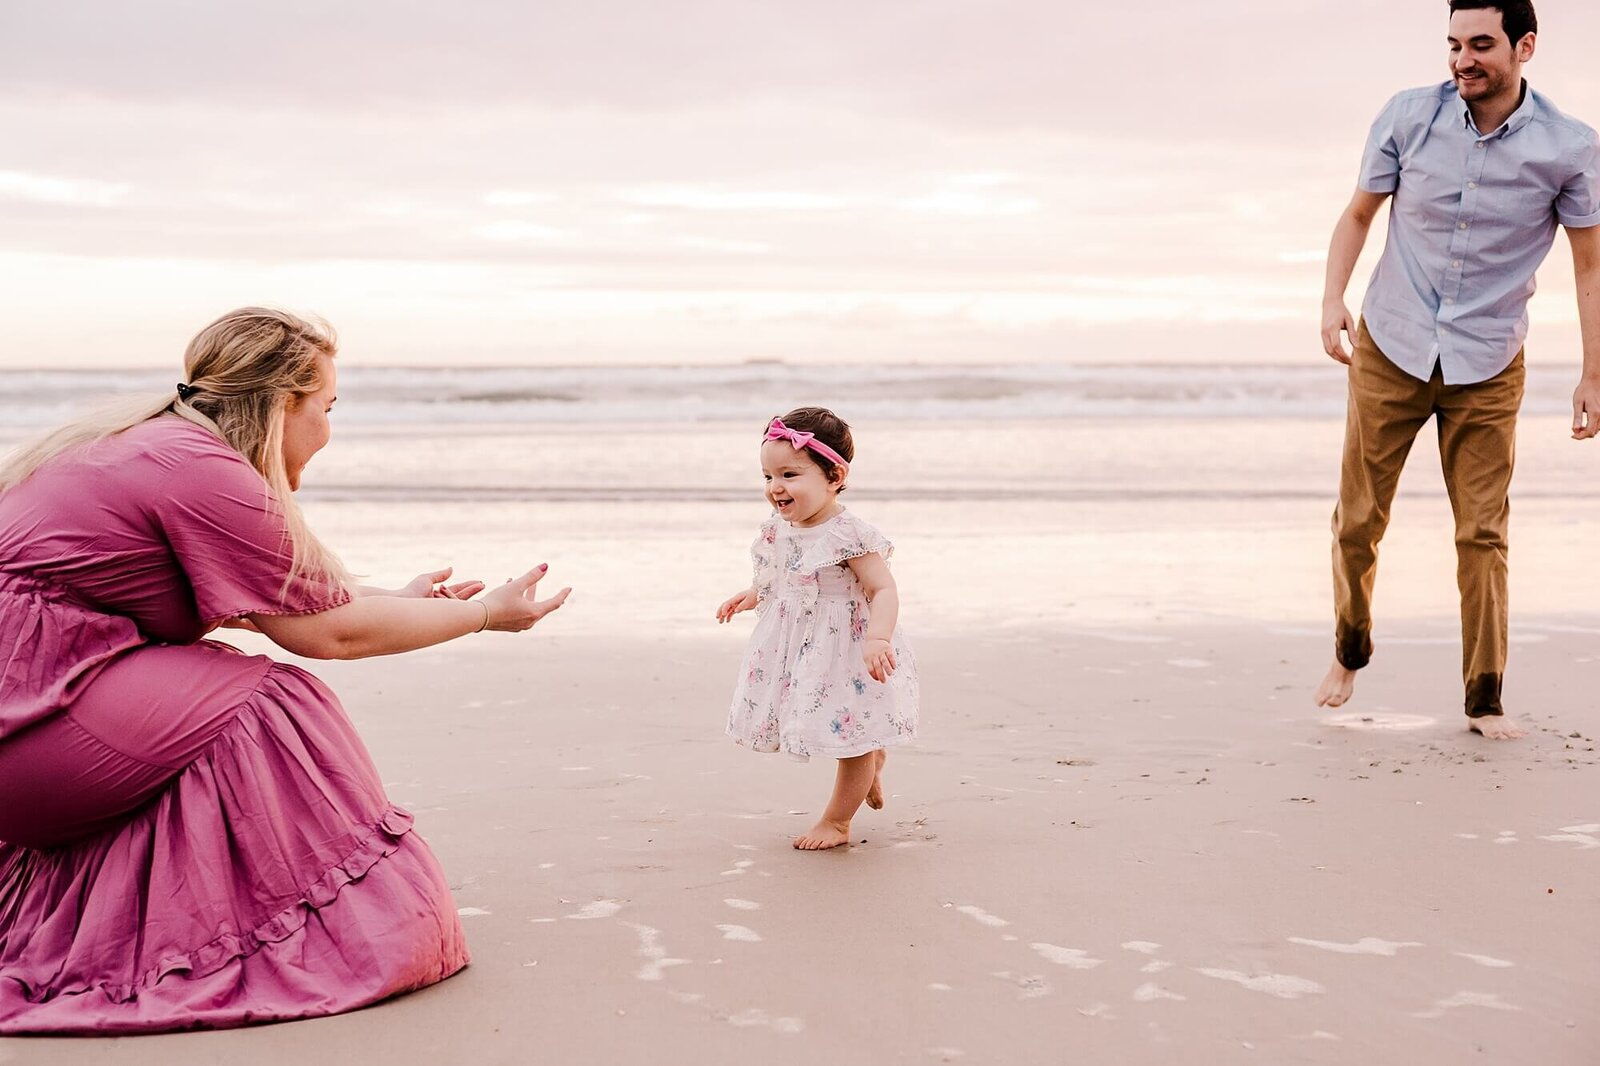 winterhaven-park-family-session-new-smyrna-beach-haleigh-nicole-photography_0013